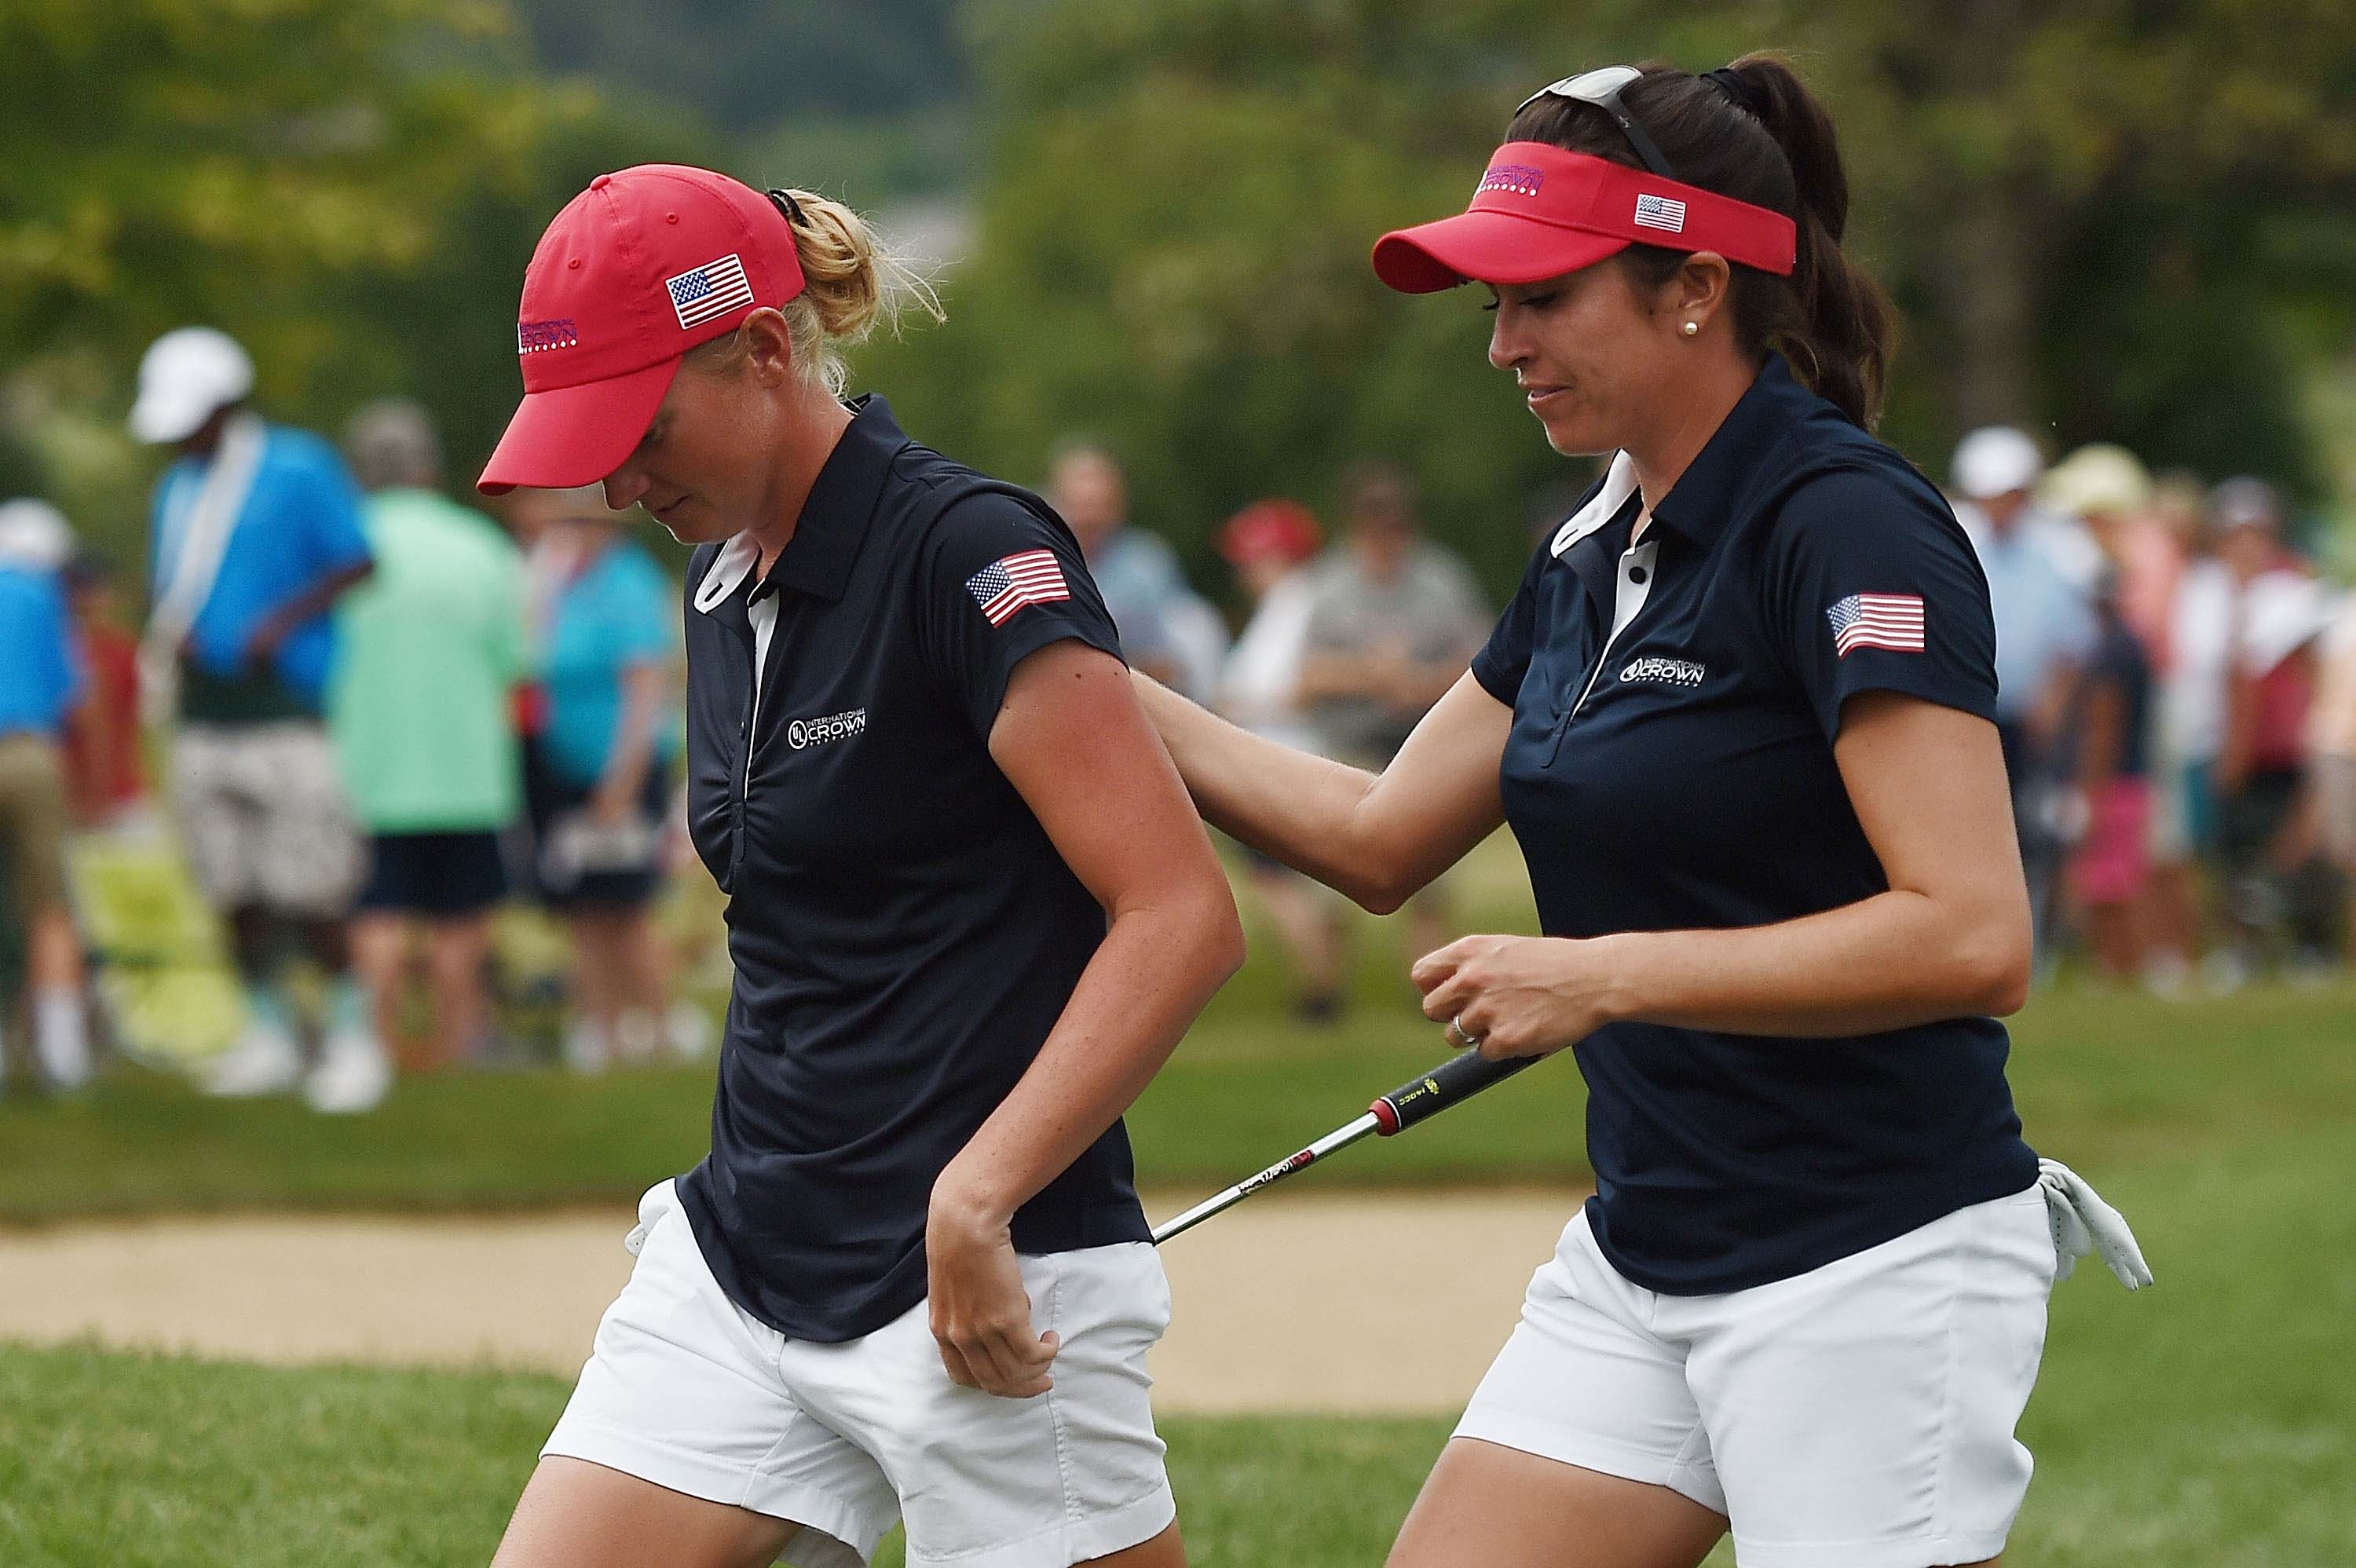 Stacy Lewis and Gerina Piller